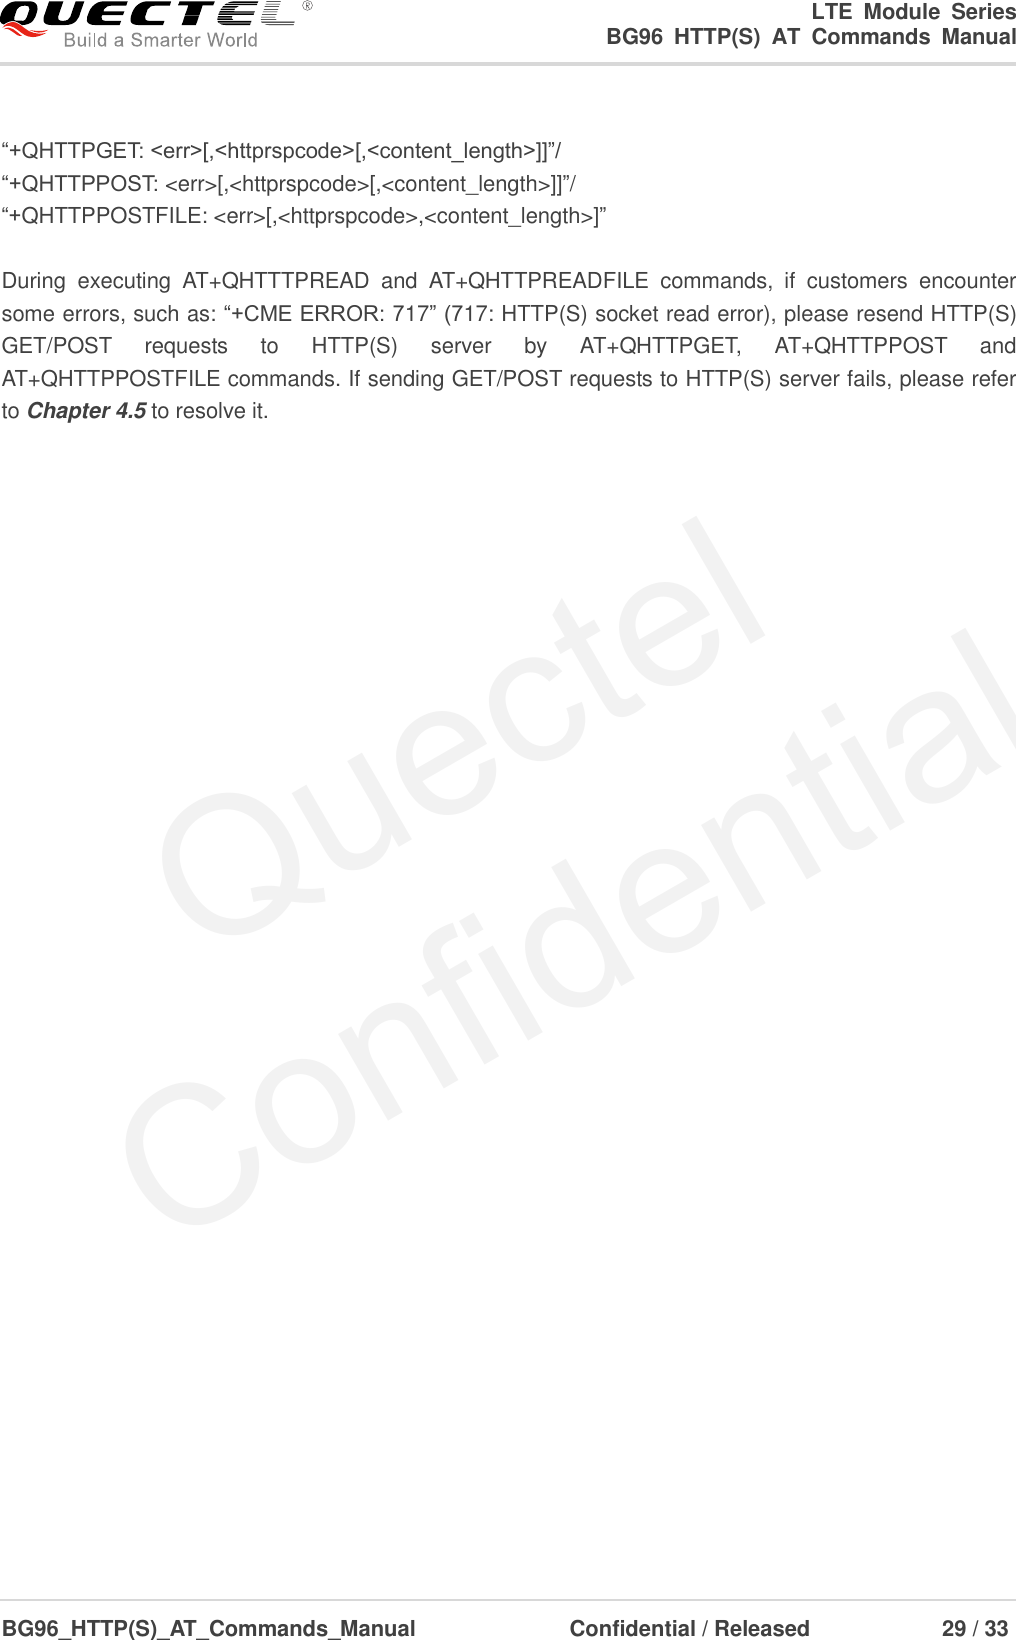 Quectel BG96 AT Commands Manual V1 0